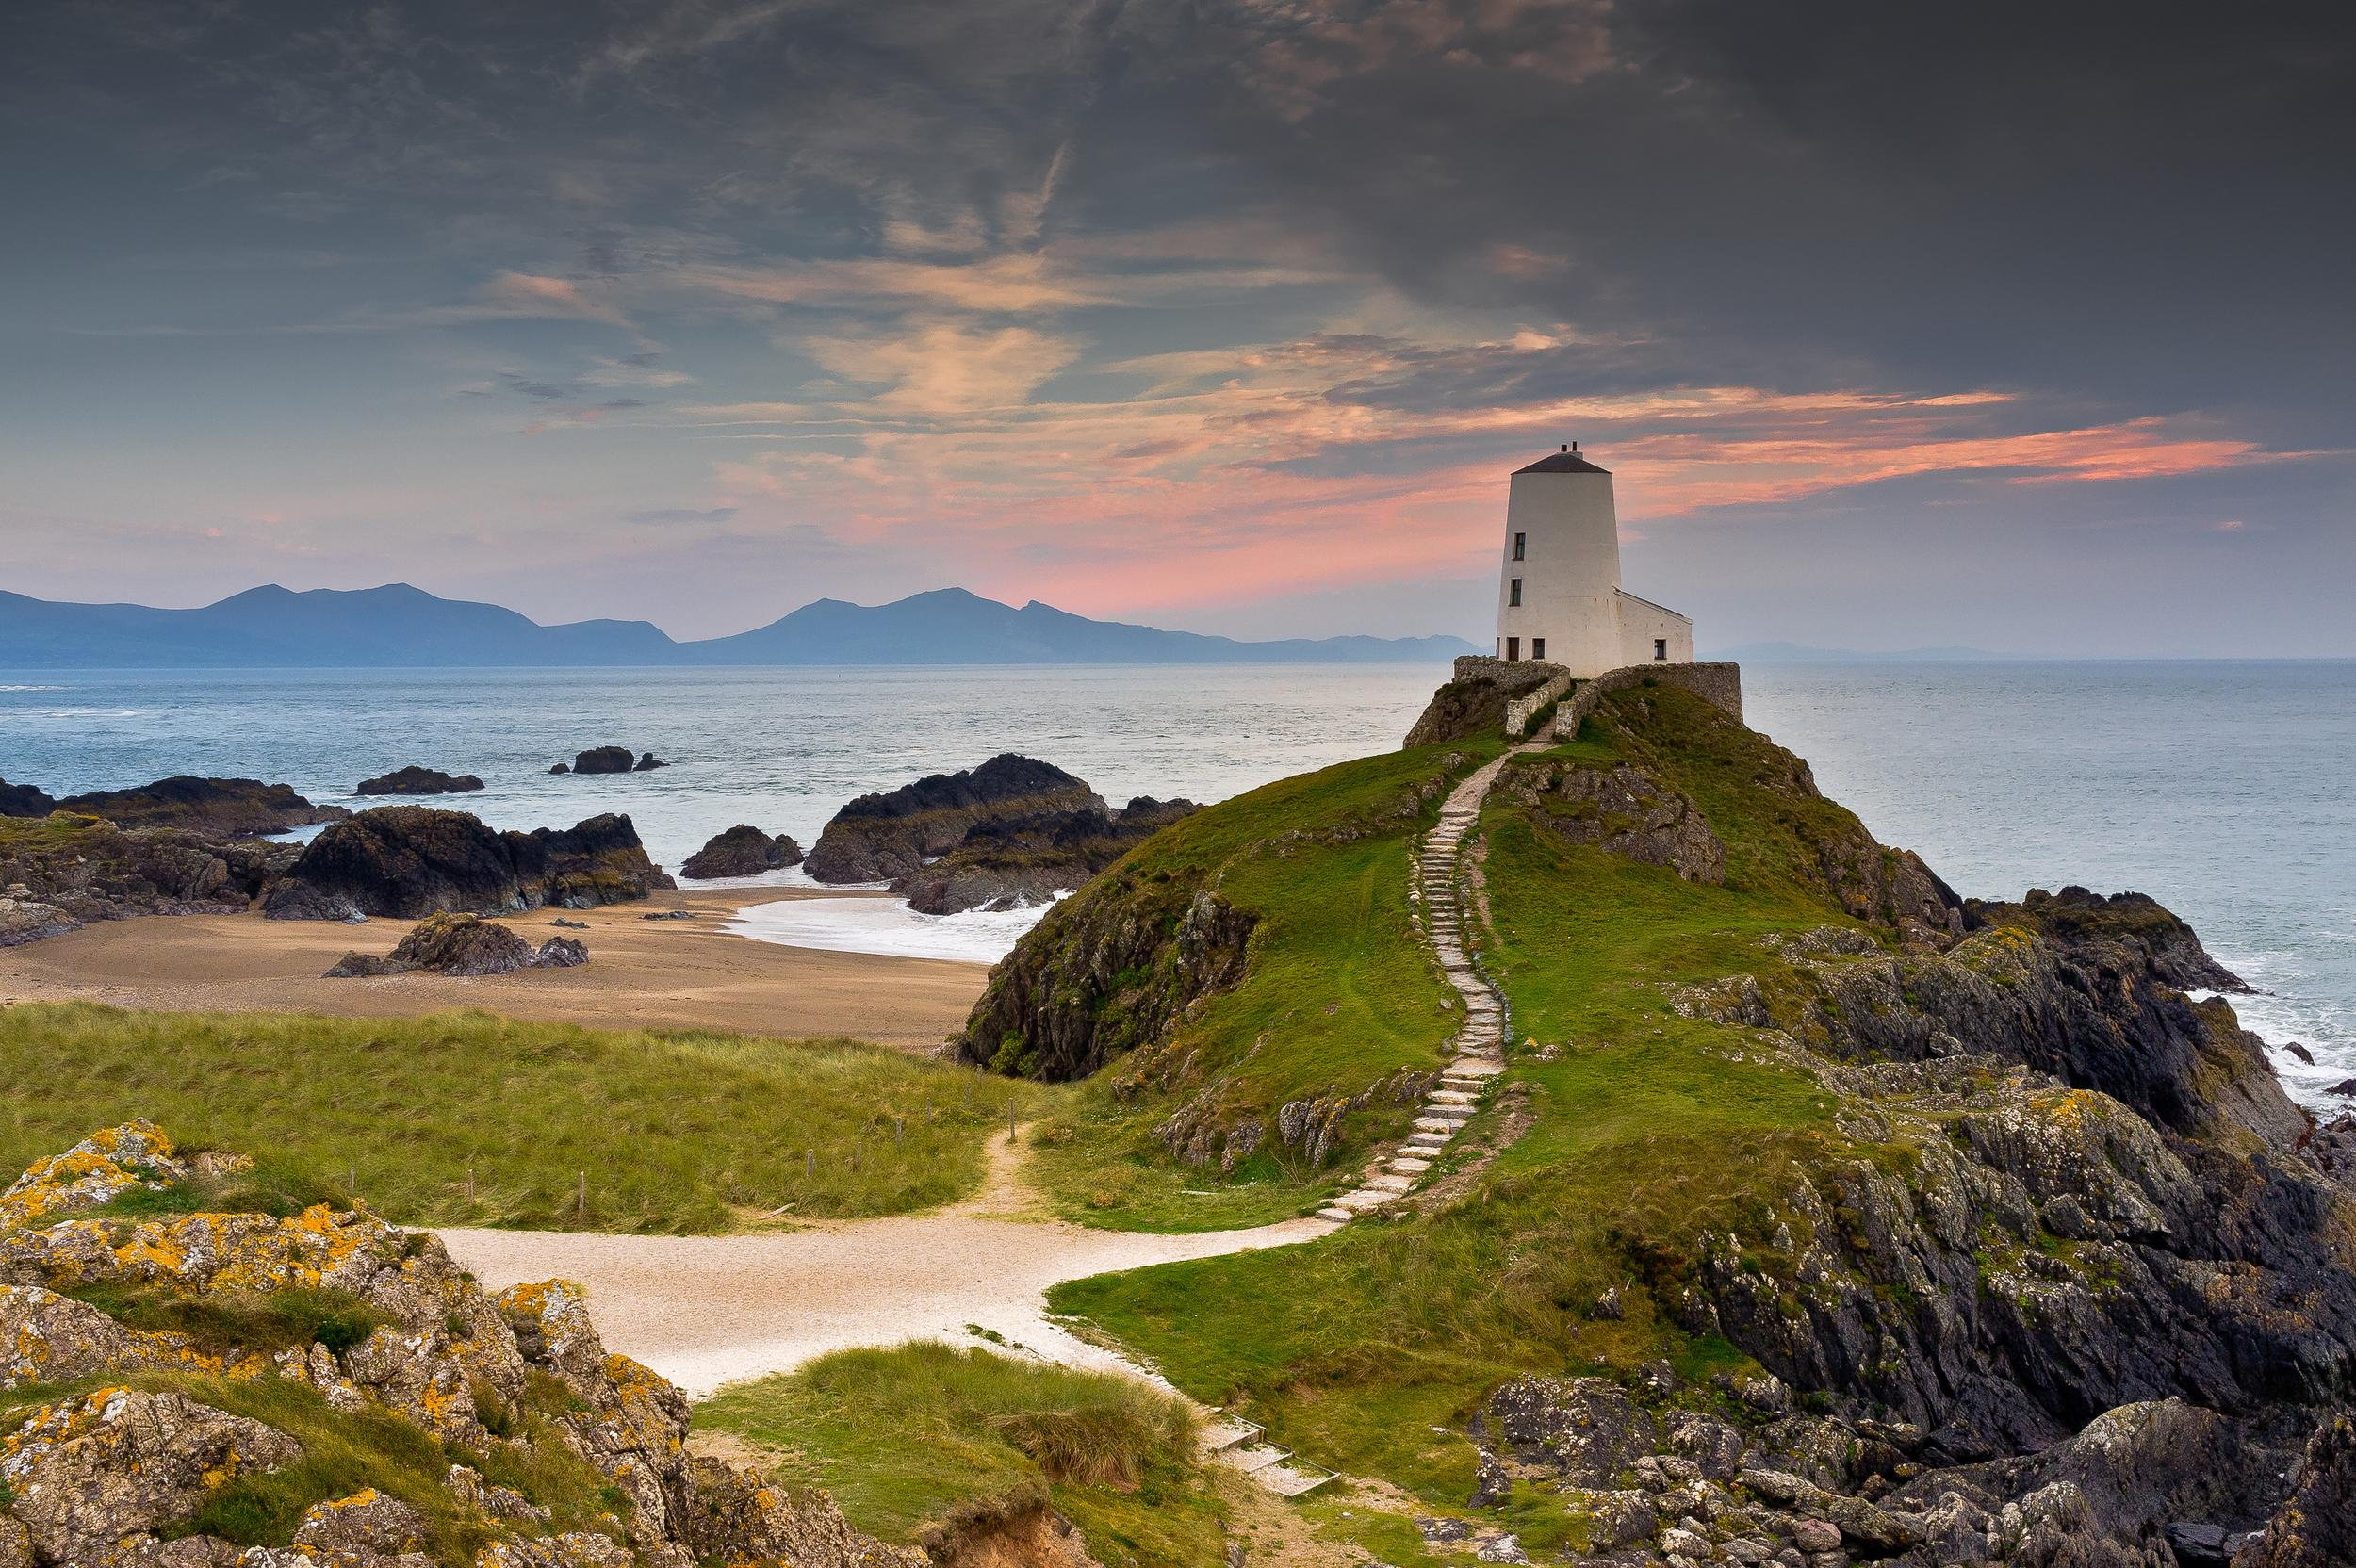 Anglesey is home to unspoilt landscapes, stunning coastlines and a whole host of outdoor activities to be enjoyed. The island boasts a rich heritage, stunning gardens and extensive amounts of plants and wildlife.